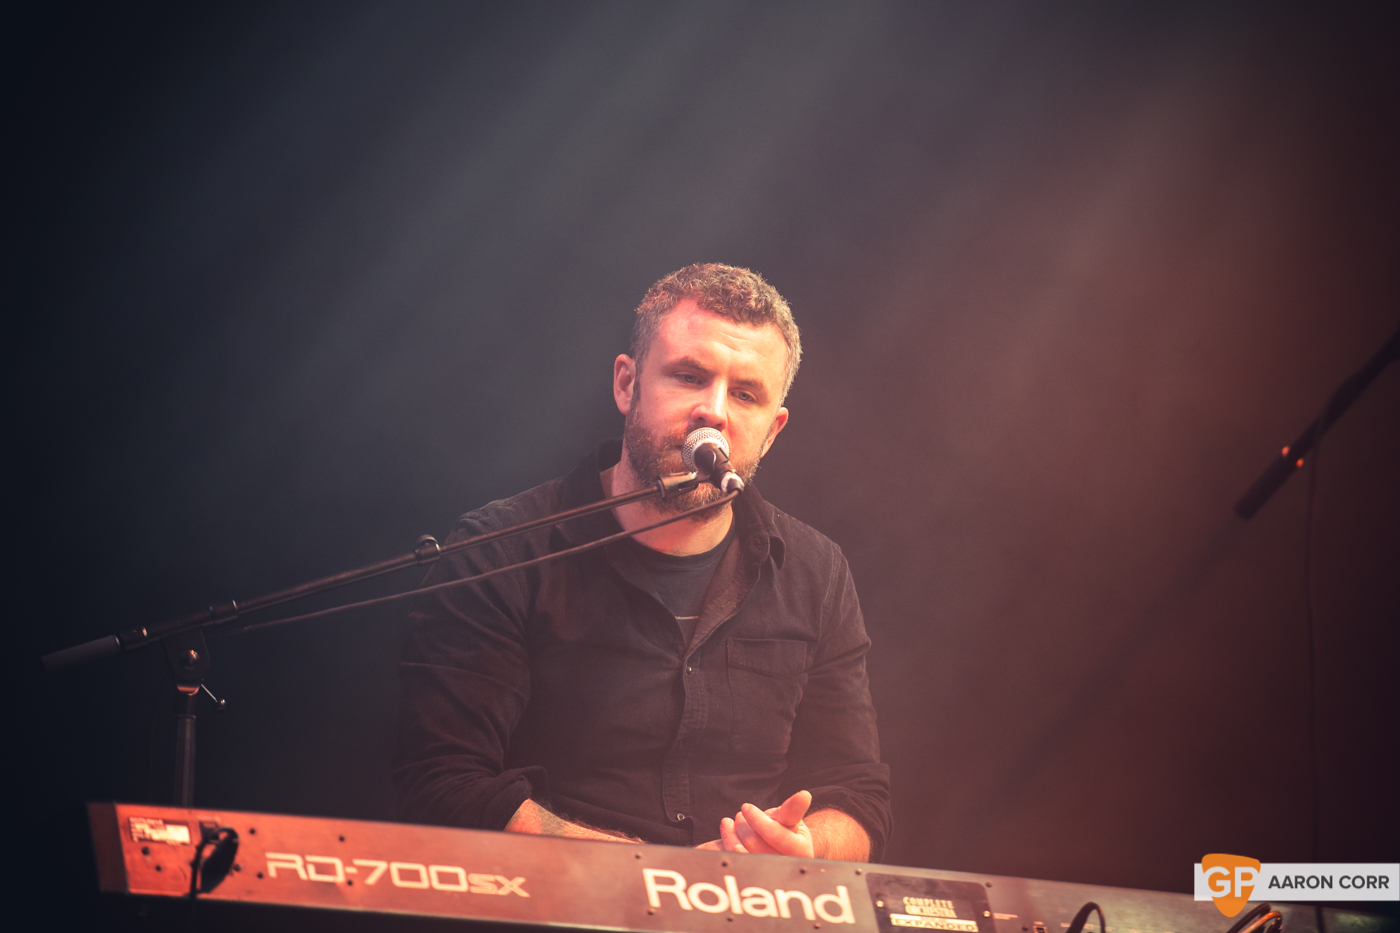 Mick Flannery at Choice Music Prize 2020 in Vicar Street, Dublin on 05-Mar-20 by Aaron Corr-5578